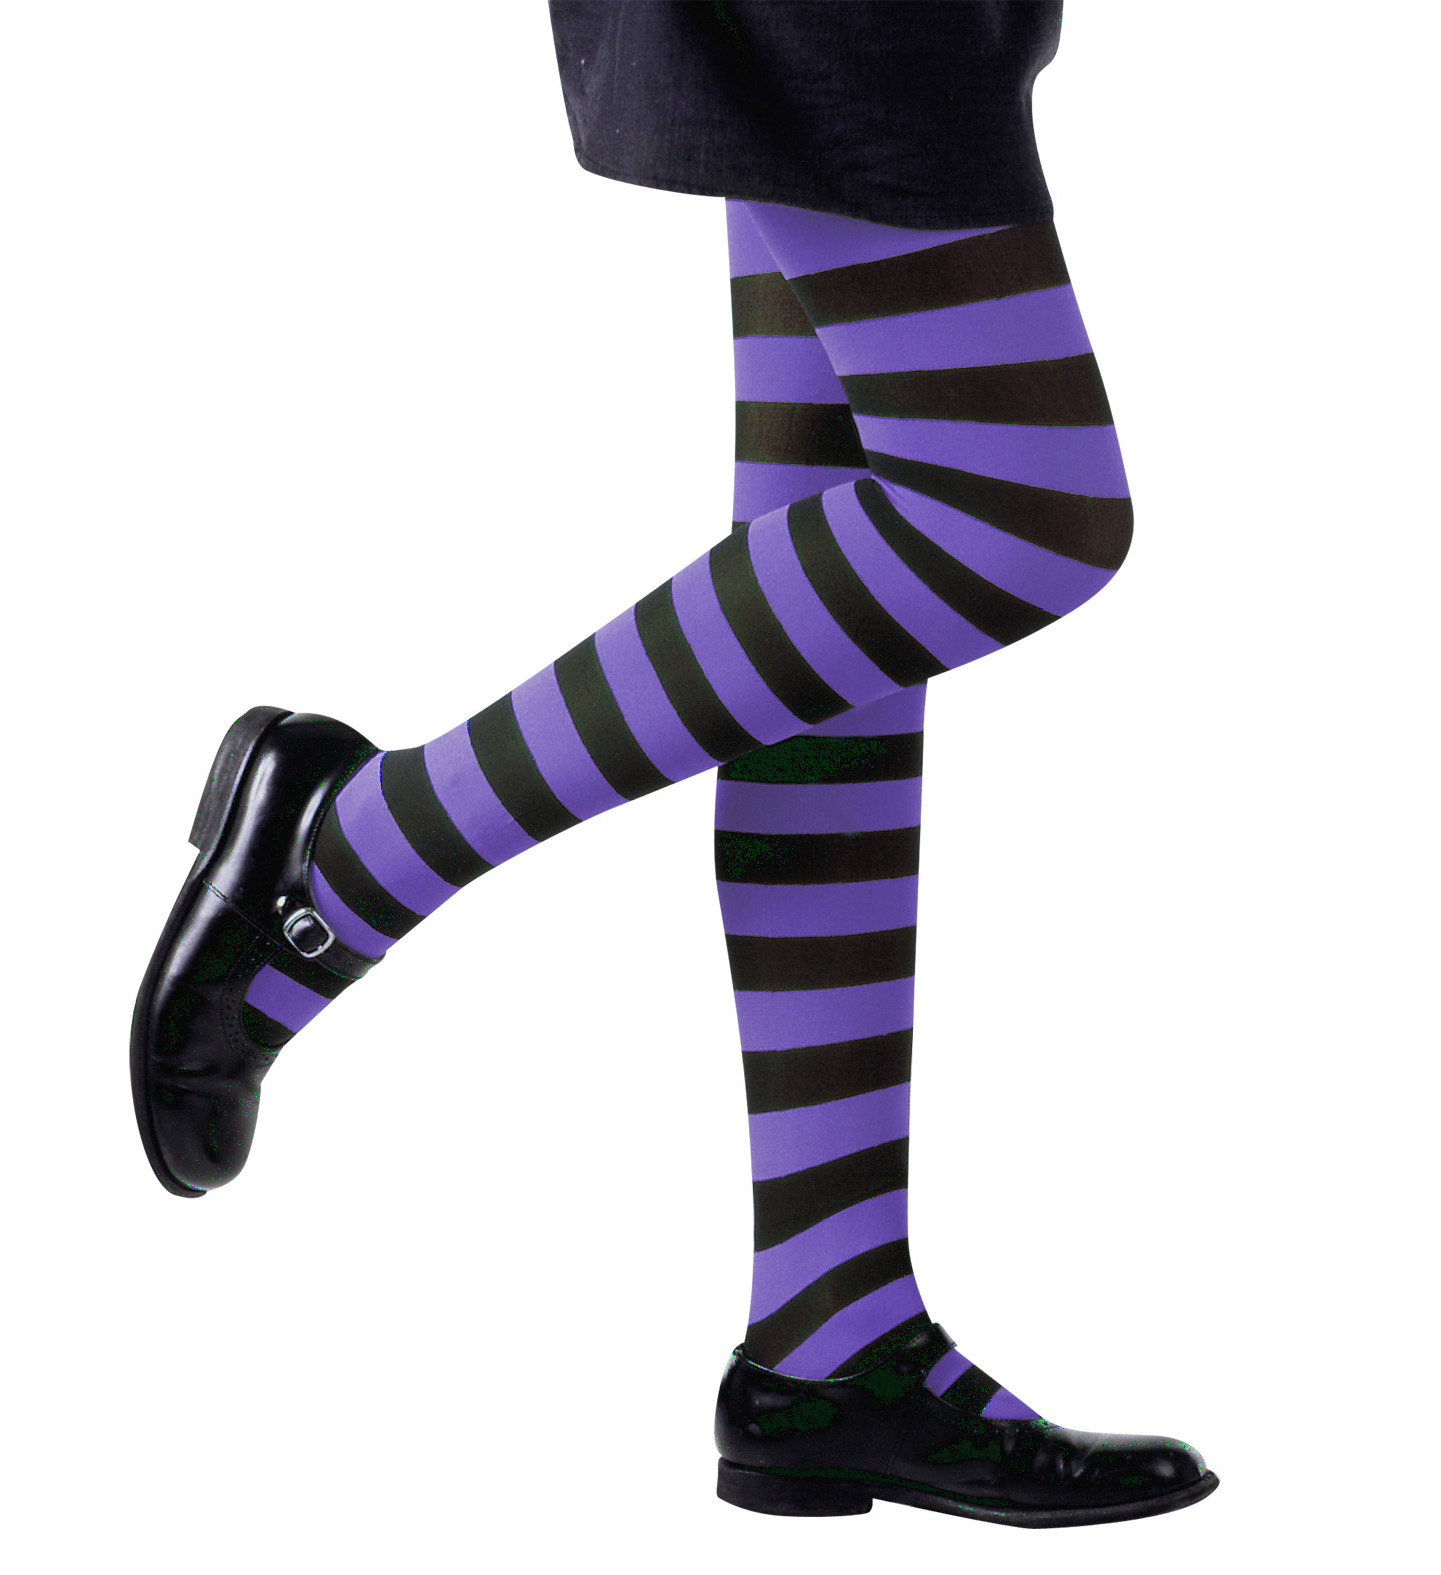 Pantyhose Striped - Purple/Black Stockings Tights Pantyhose Lingerie Halloween